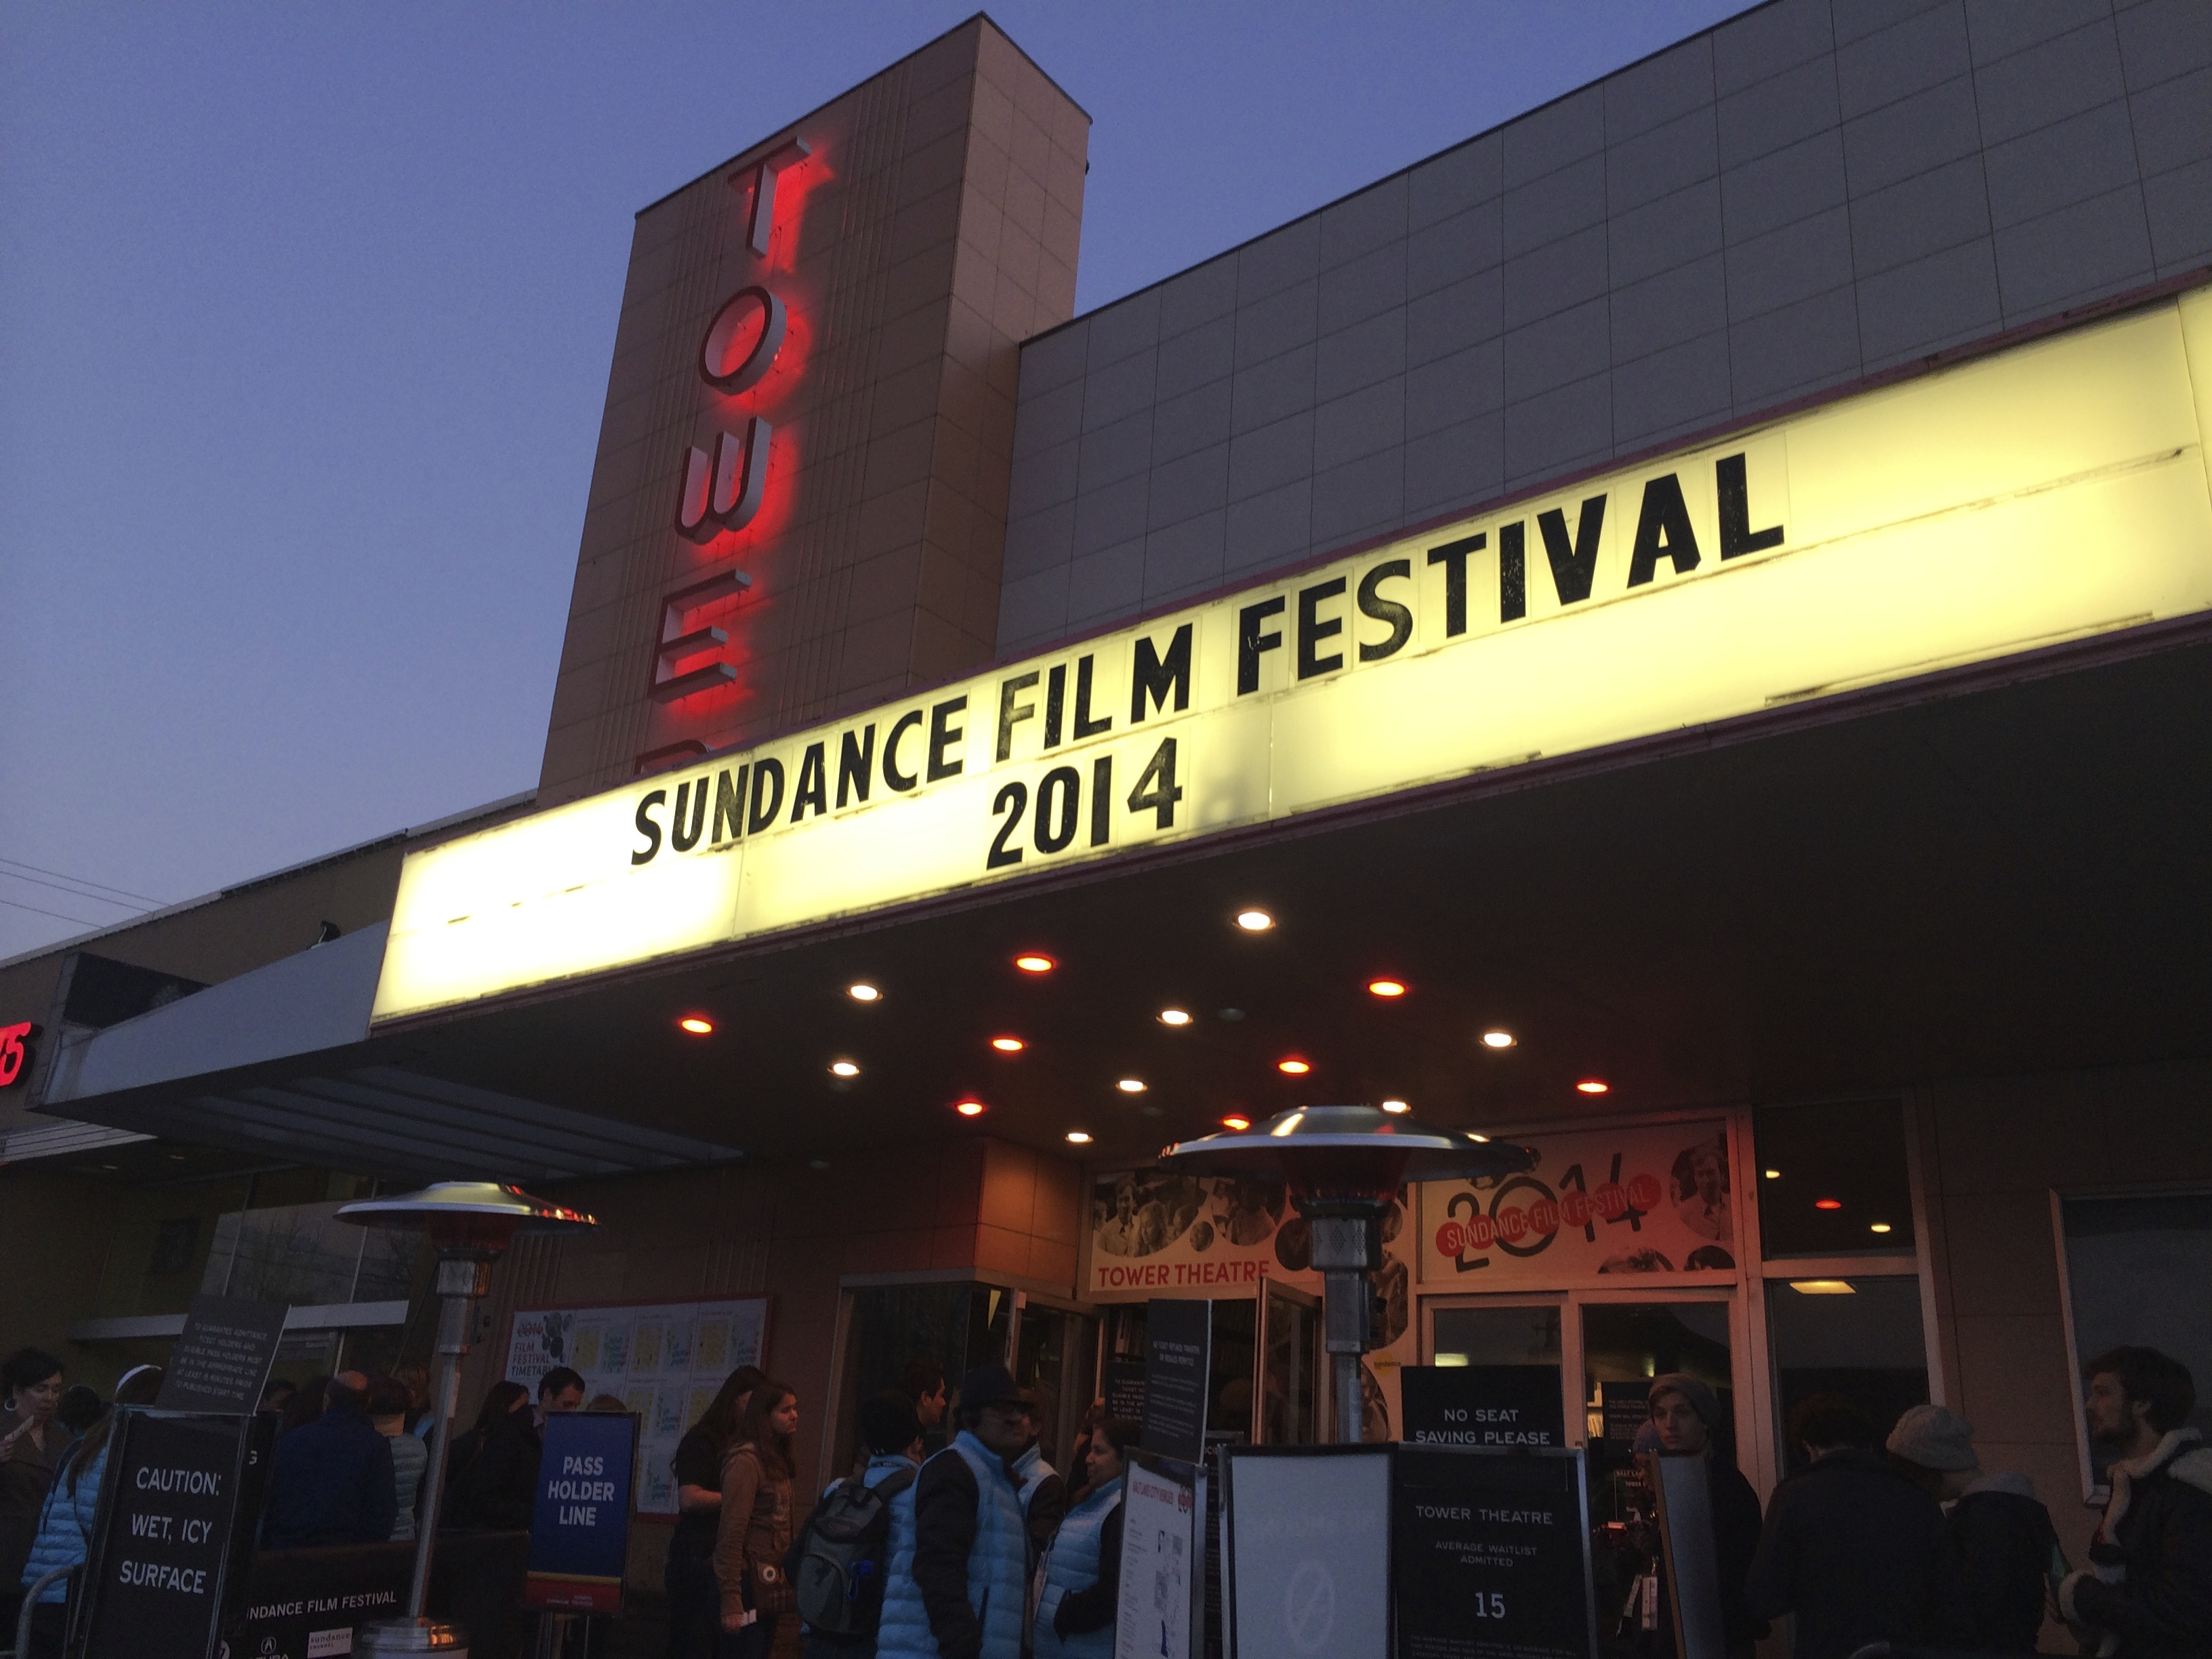 Tower Theater - Sundance.